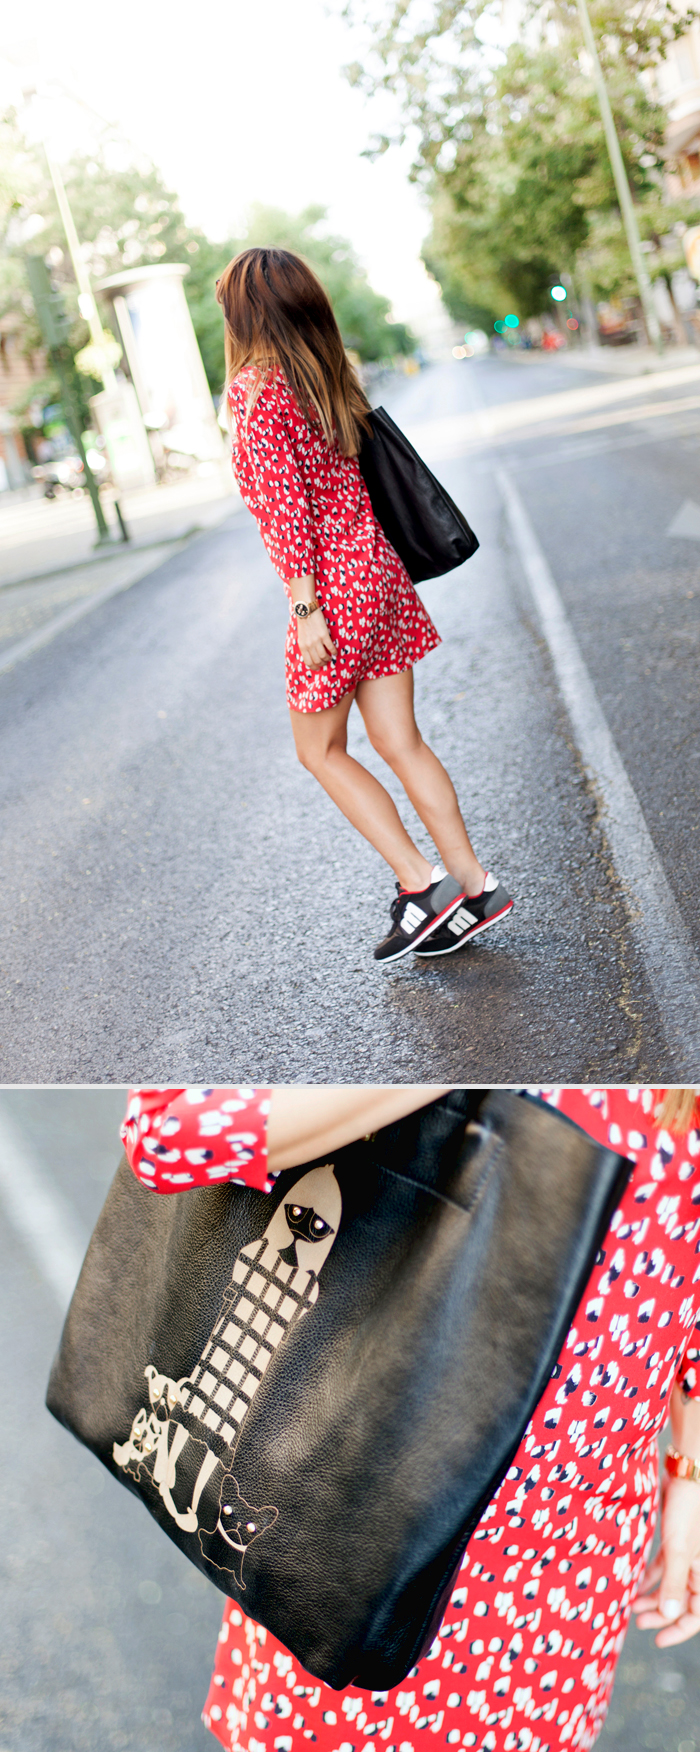 street style barbara crespo just for fun not to run! mustang sneakers outfit